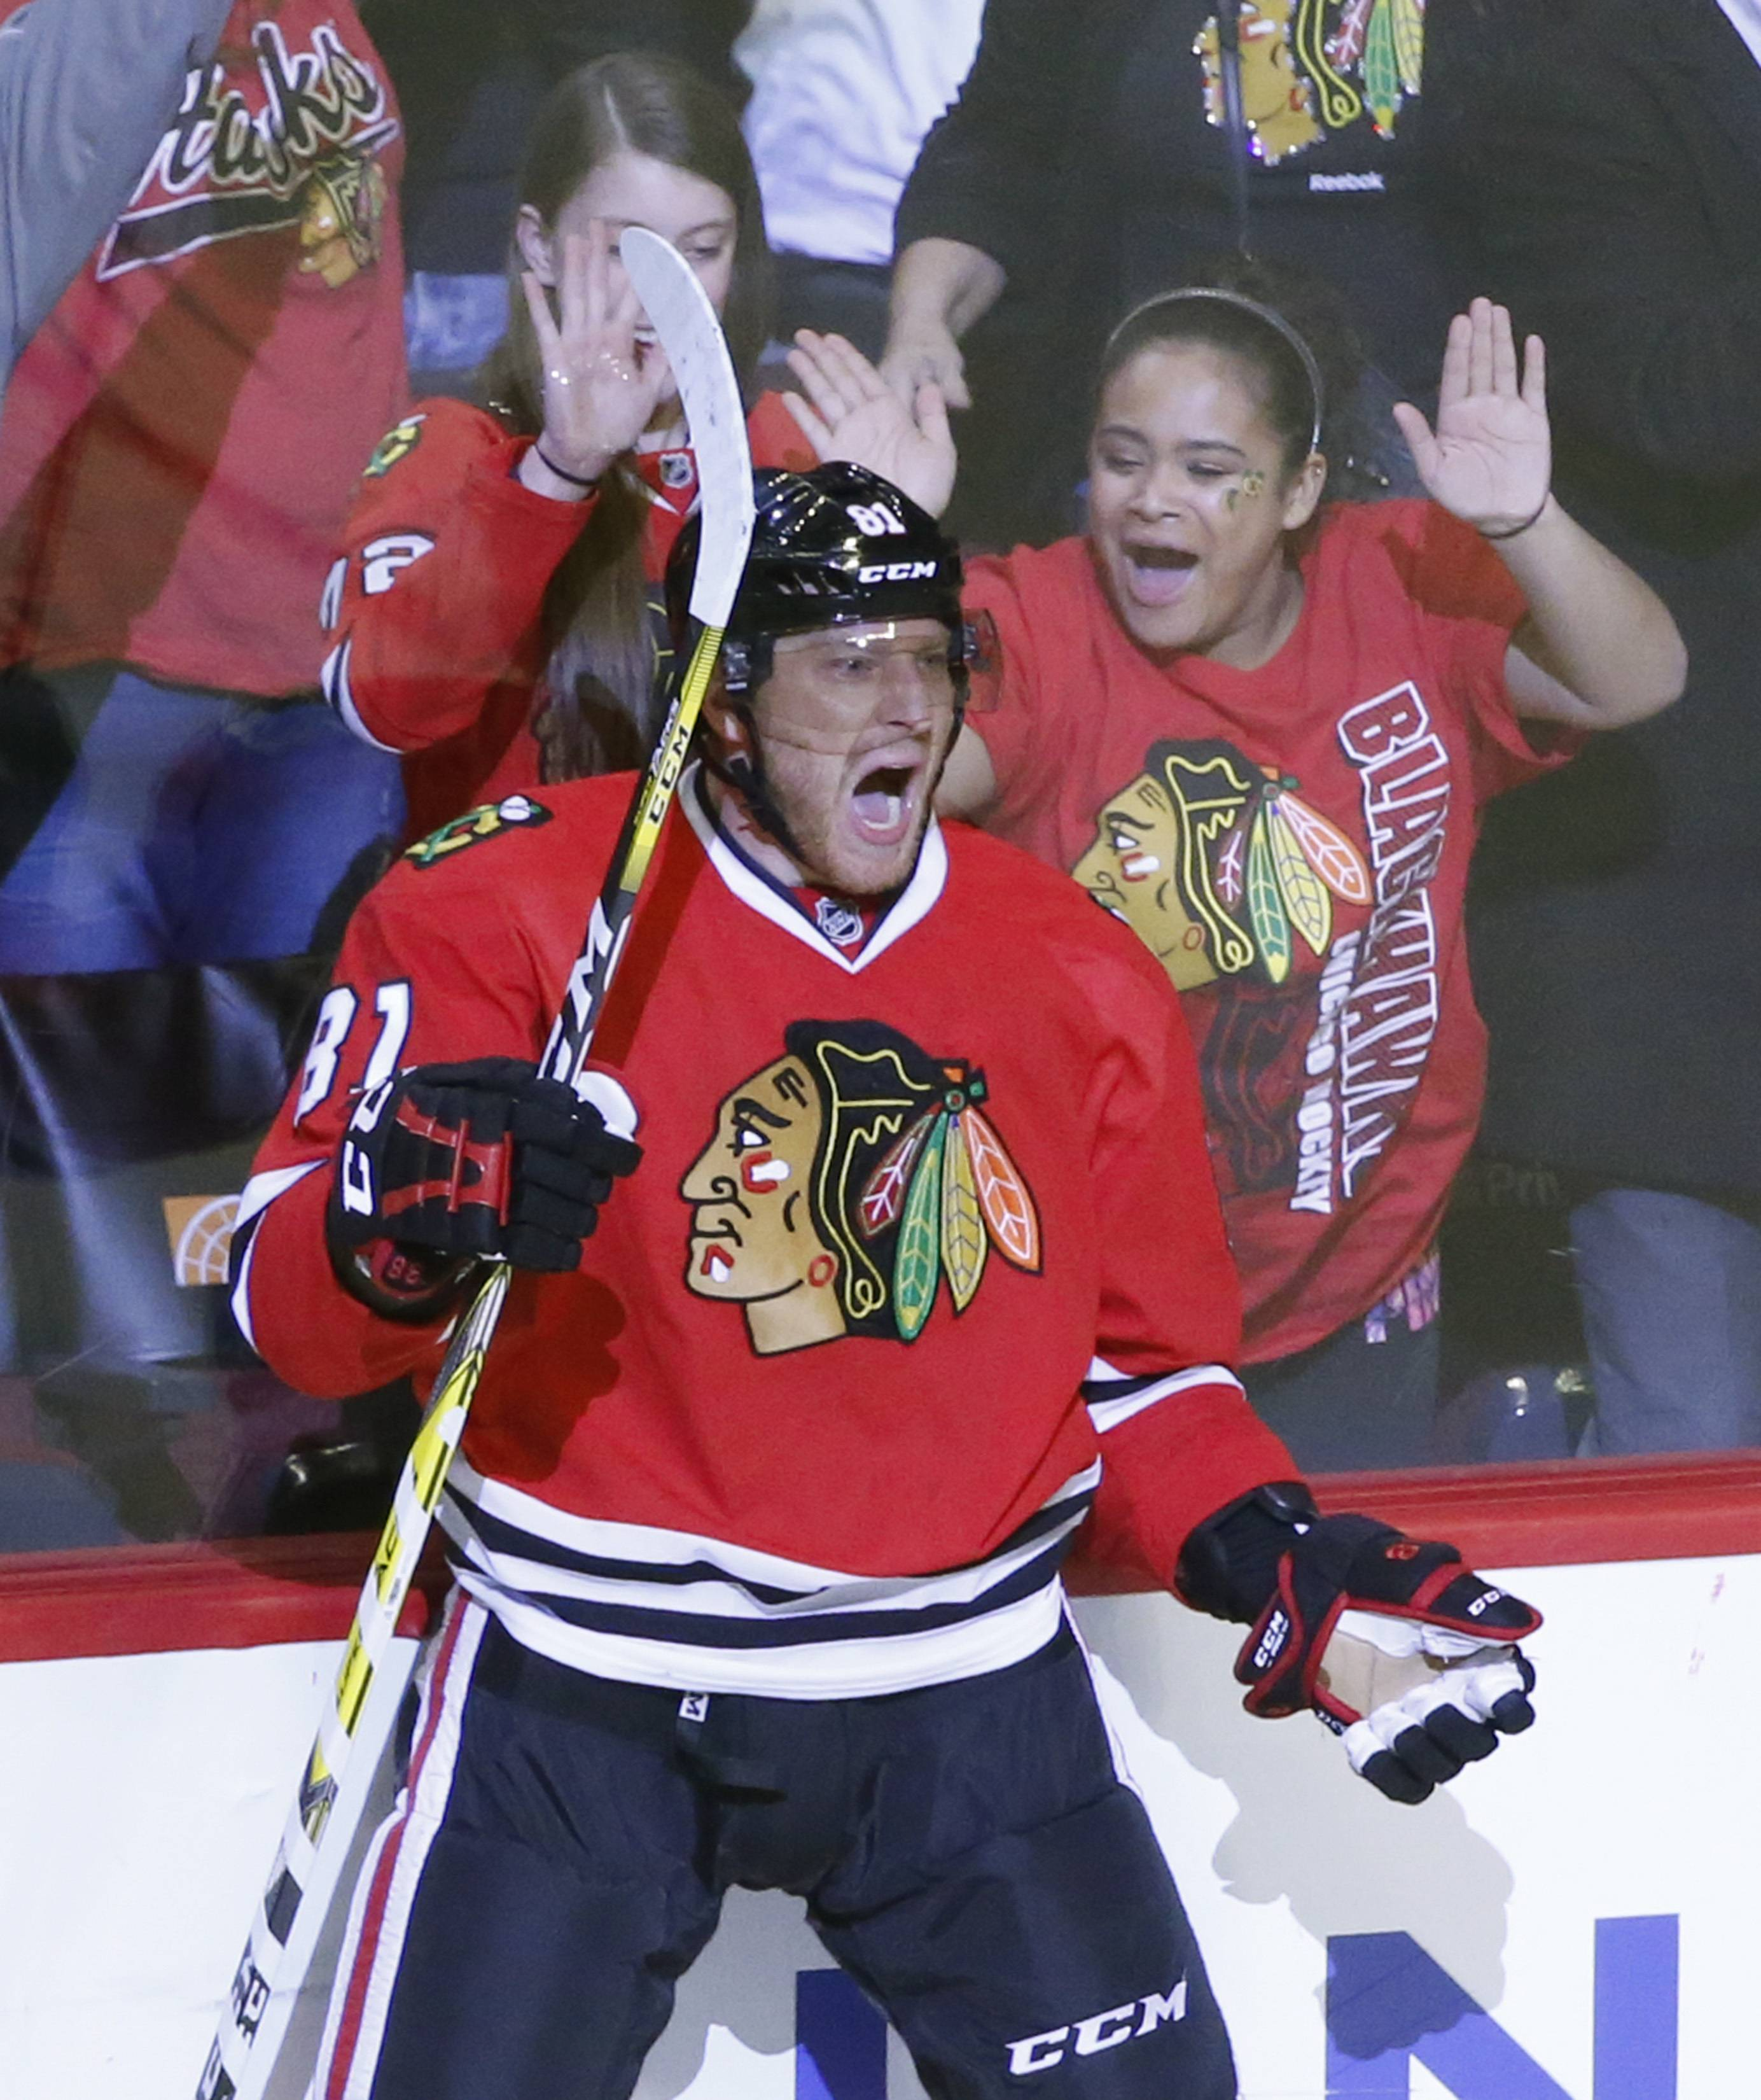 Chicago Blackhawks' Marian Hossa (81) celebrate his game winning goal during the overtime period of an NHL hockey game against the New Jersey Devils Thursday, Dec. 1, 2016, in Chicago. The Blackhawks won 4-3.